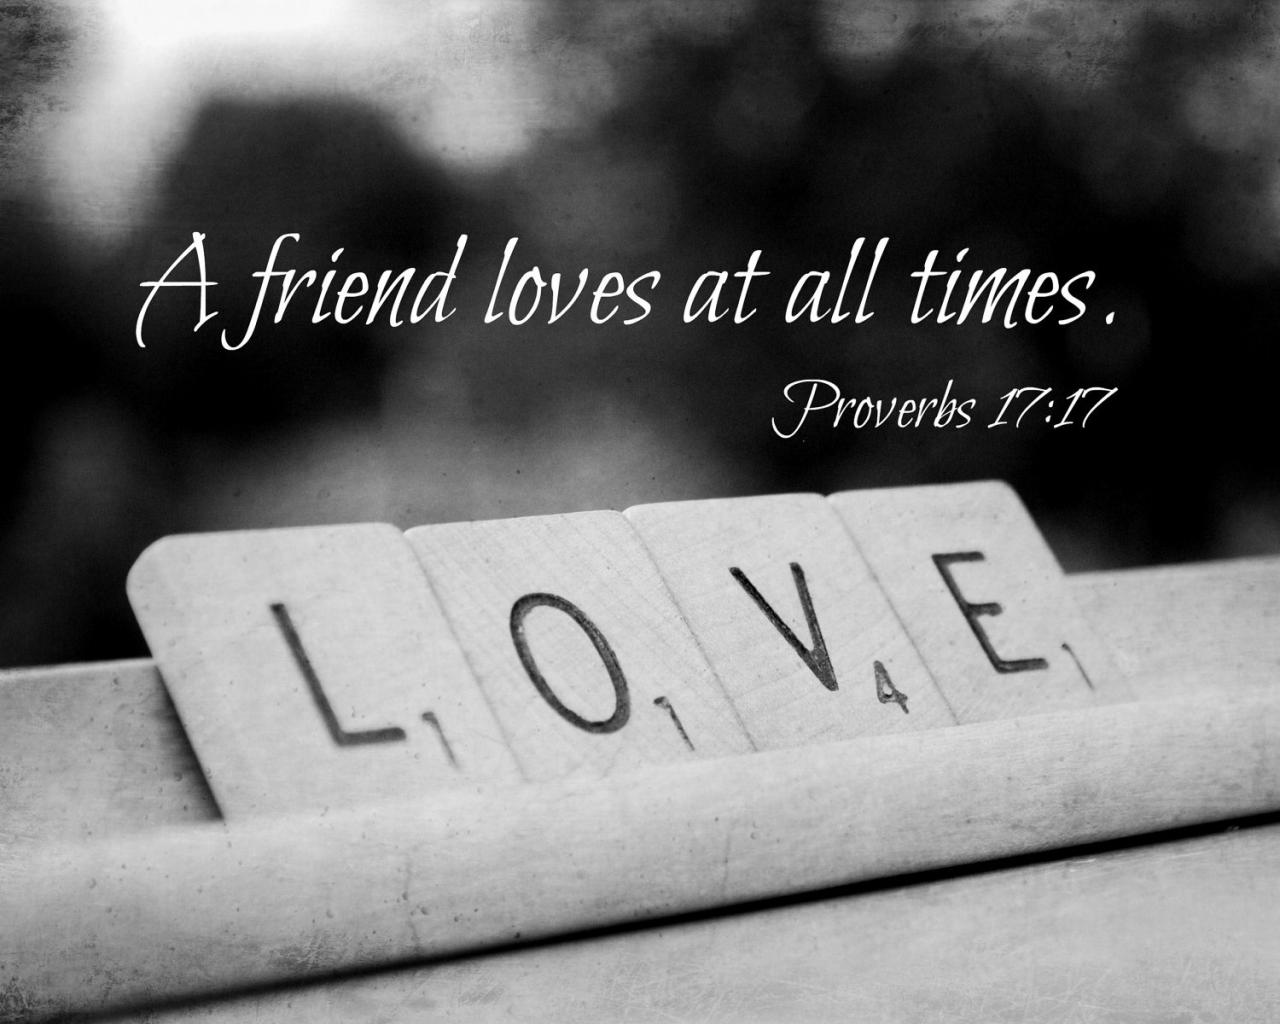 Bible Quotes About Love And Friendship Love Bible Verses Free Bible Verses Bible Quotes On